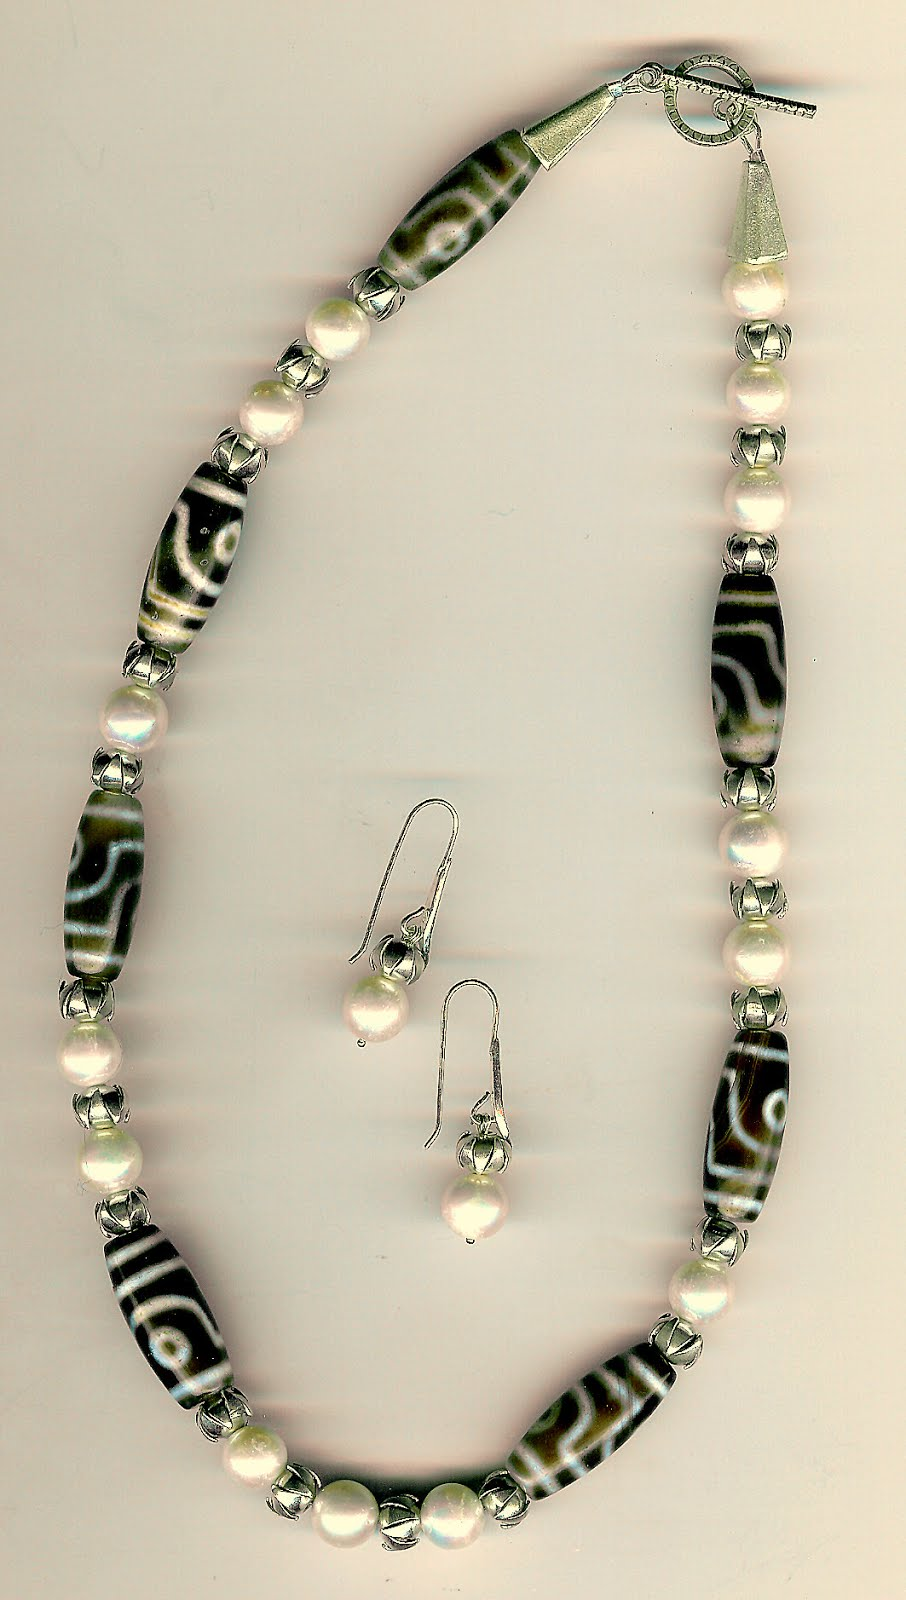 237. Thai Sterling Silver with Cultured Pearls and Tibetan Beads